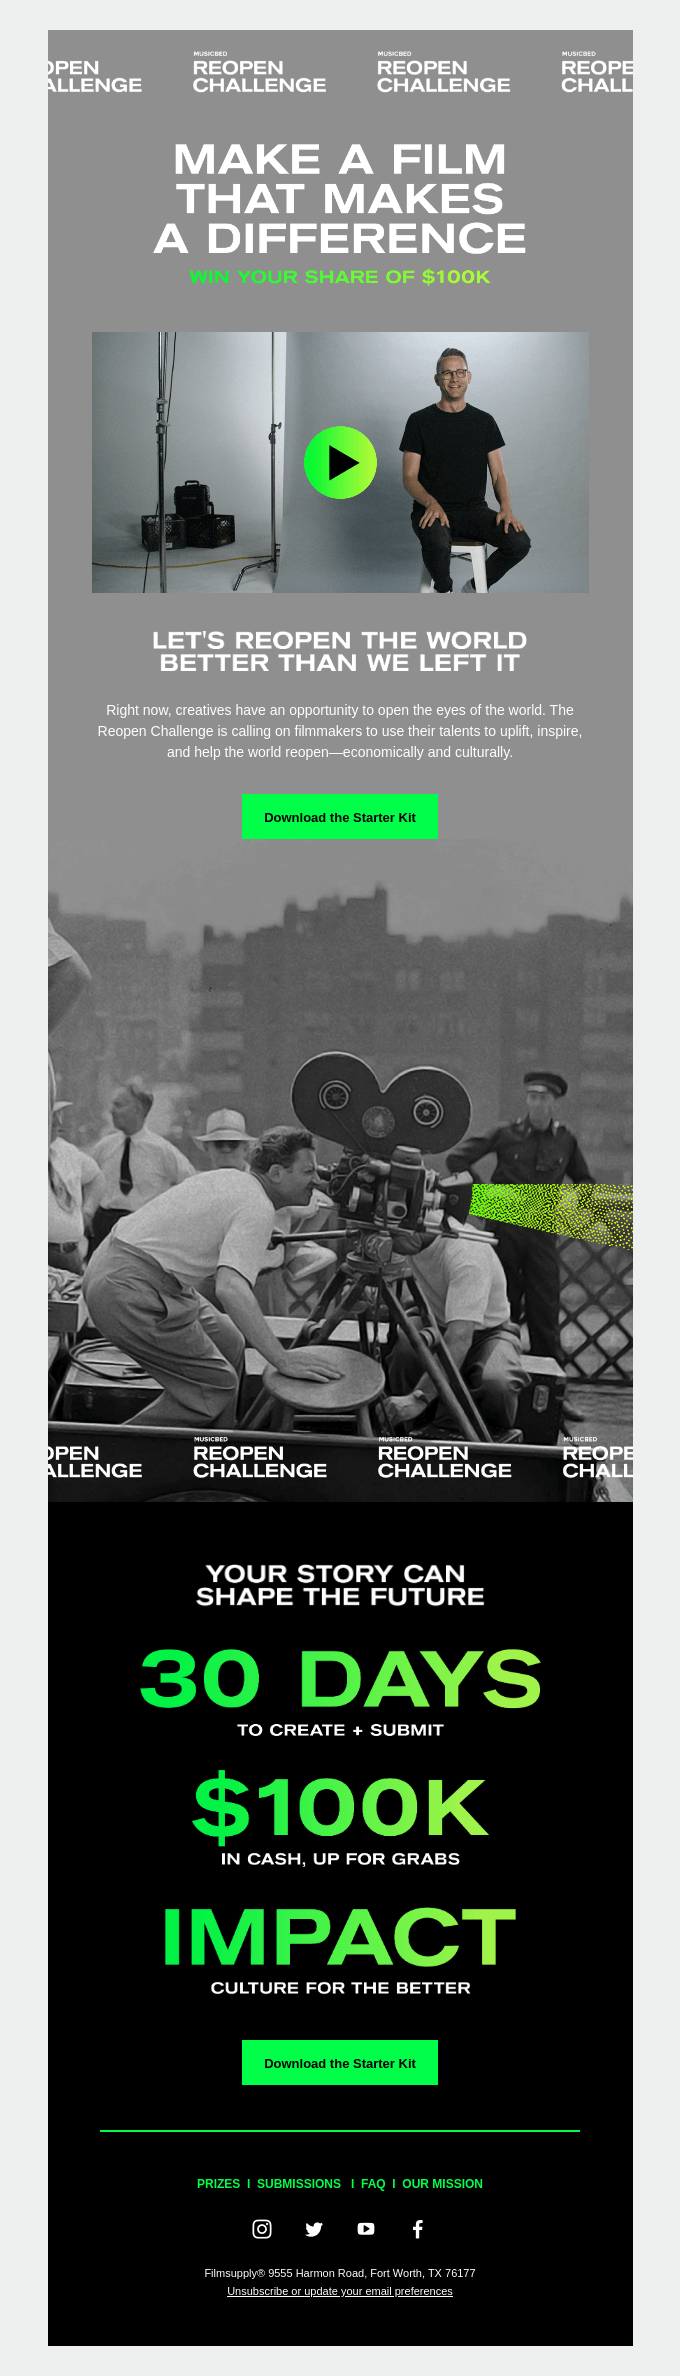 Reopen Challenge: Make a Film. Make a Difference.